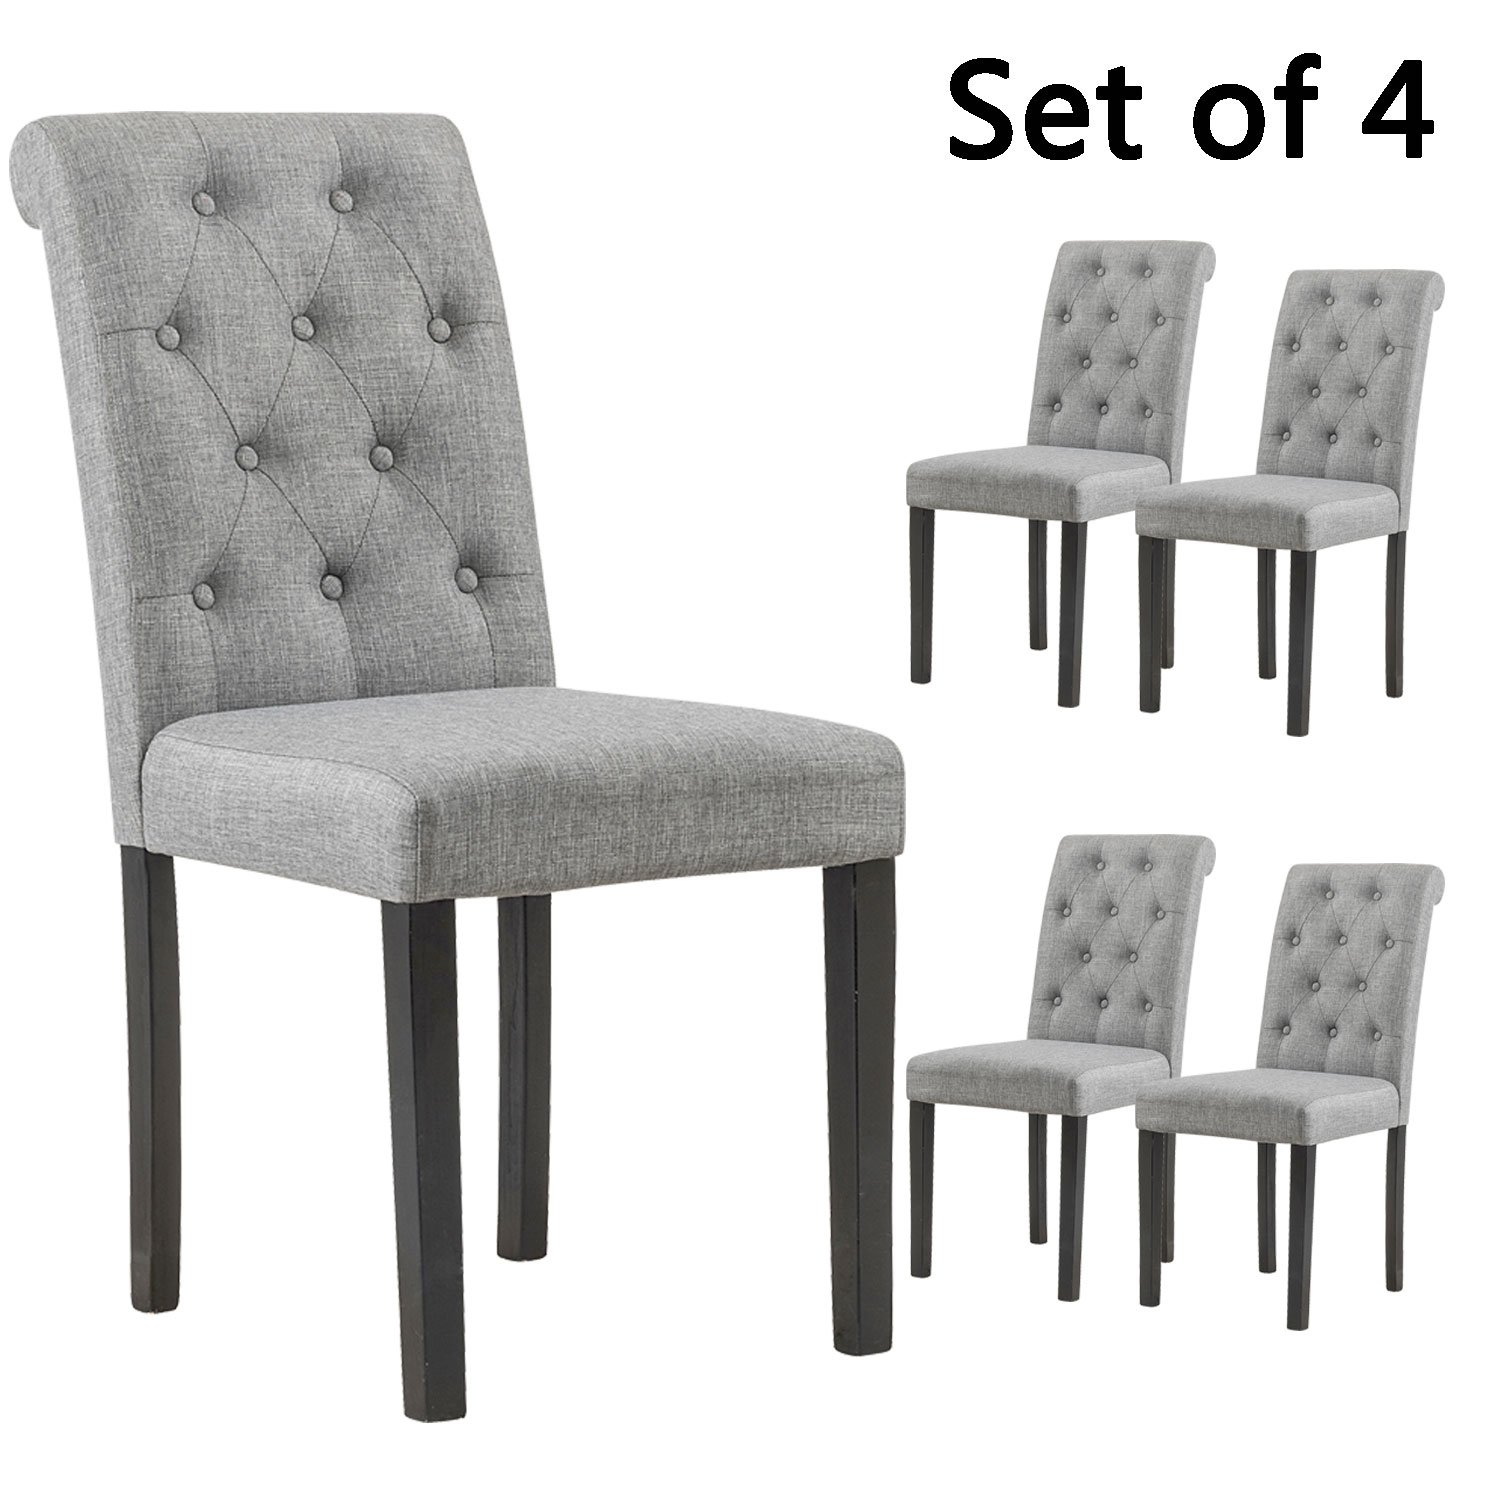 YEEFY Habit Solid Wood Tufted Parsons Dining Chair (Set of 4) (Gray) by YEEFY